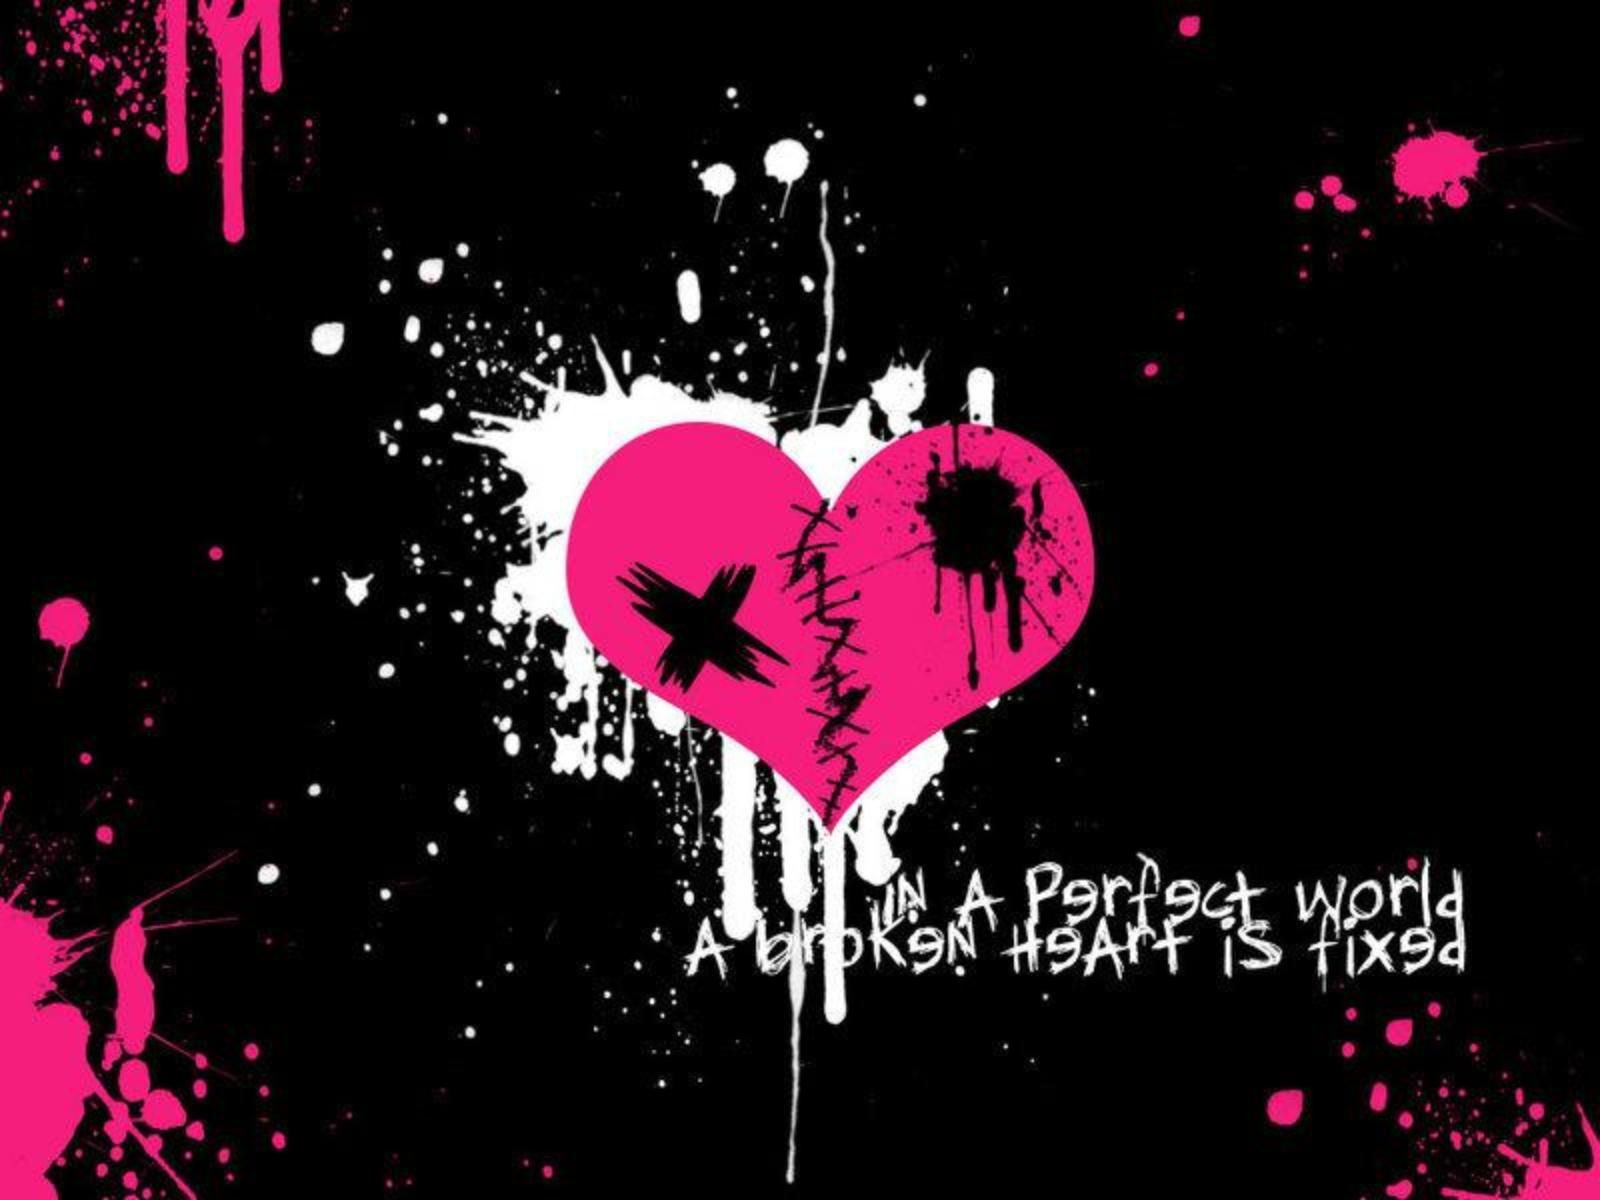 Emo Heart Background Wallpaper Jpg 1600 1200 Emo Wallpaper